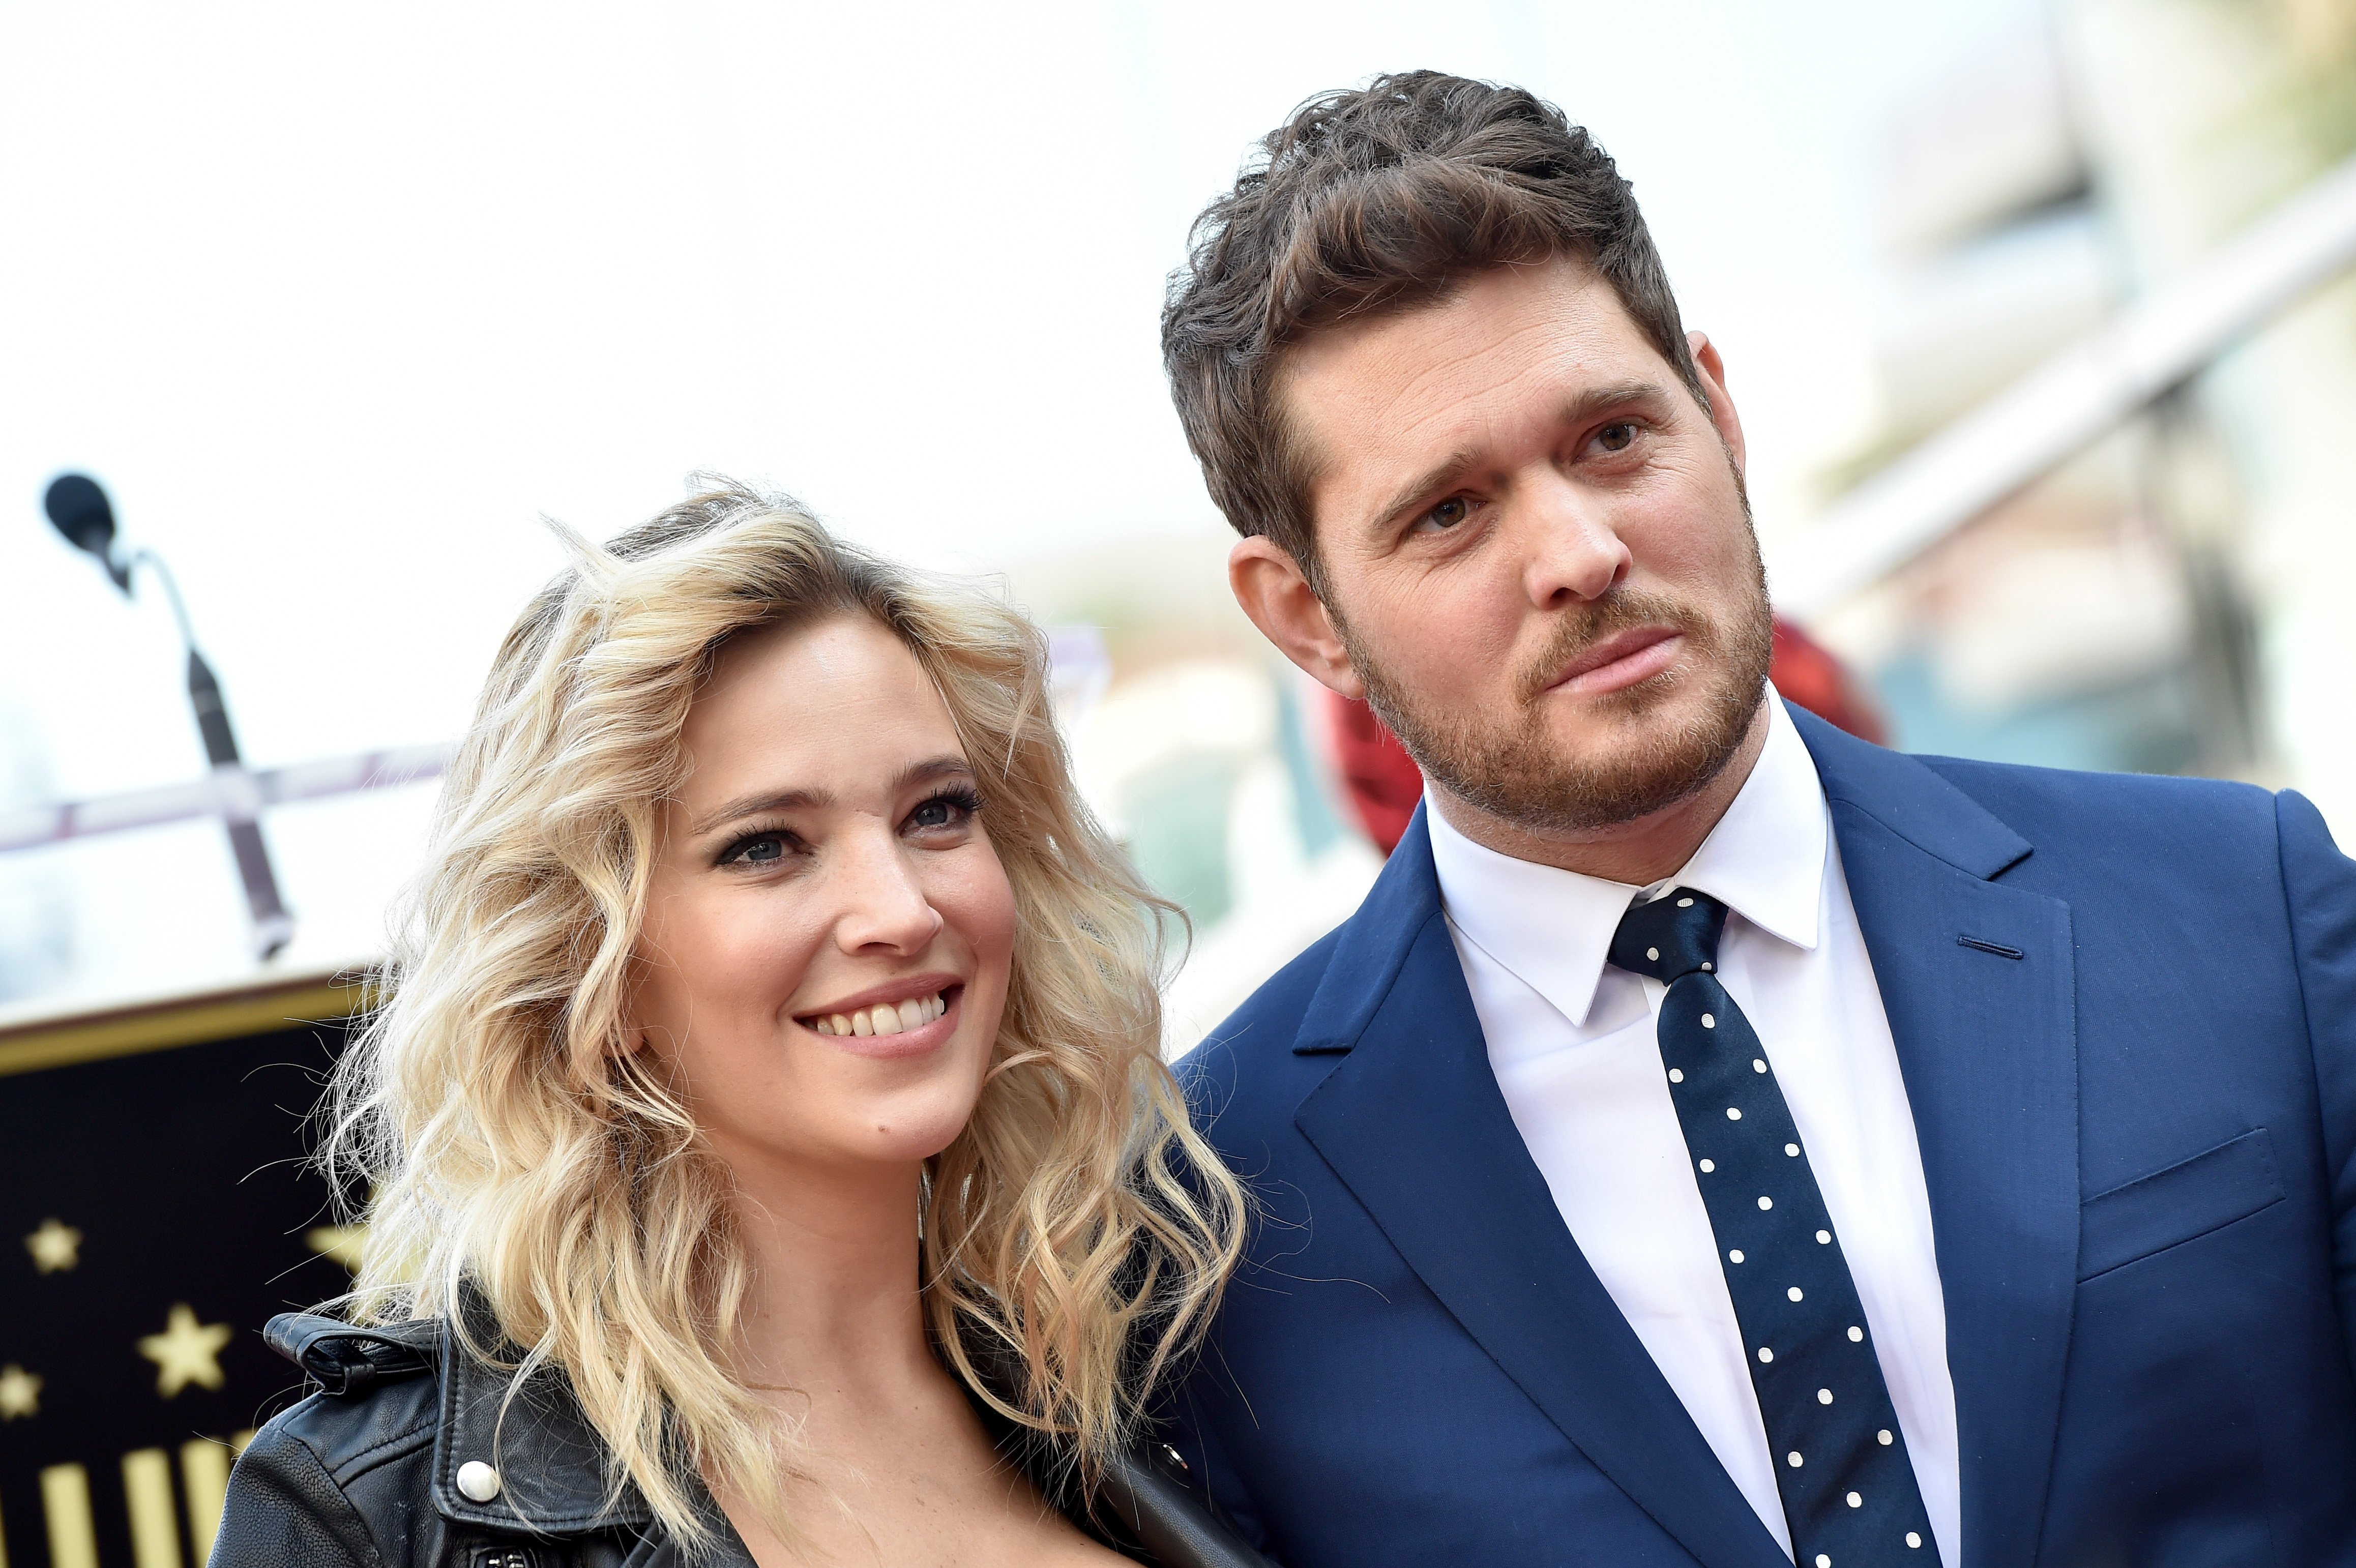 Michael Buble and Luisana Lopilato attend the ceremony honoring Michael Buble with star on the Hollywood Walk of Fame on November 16, 2018, in Hollywood, California. | Source: Getty Images.